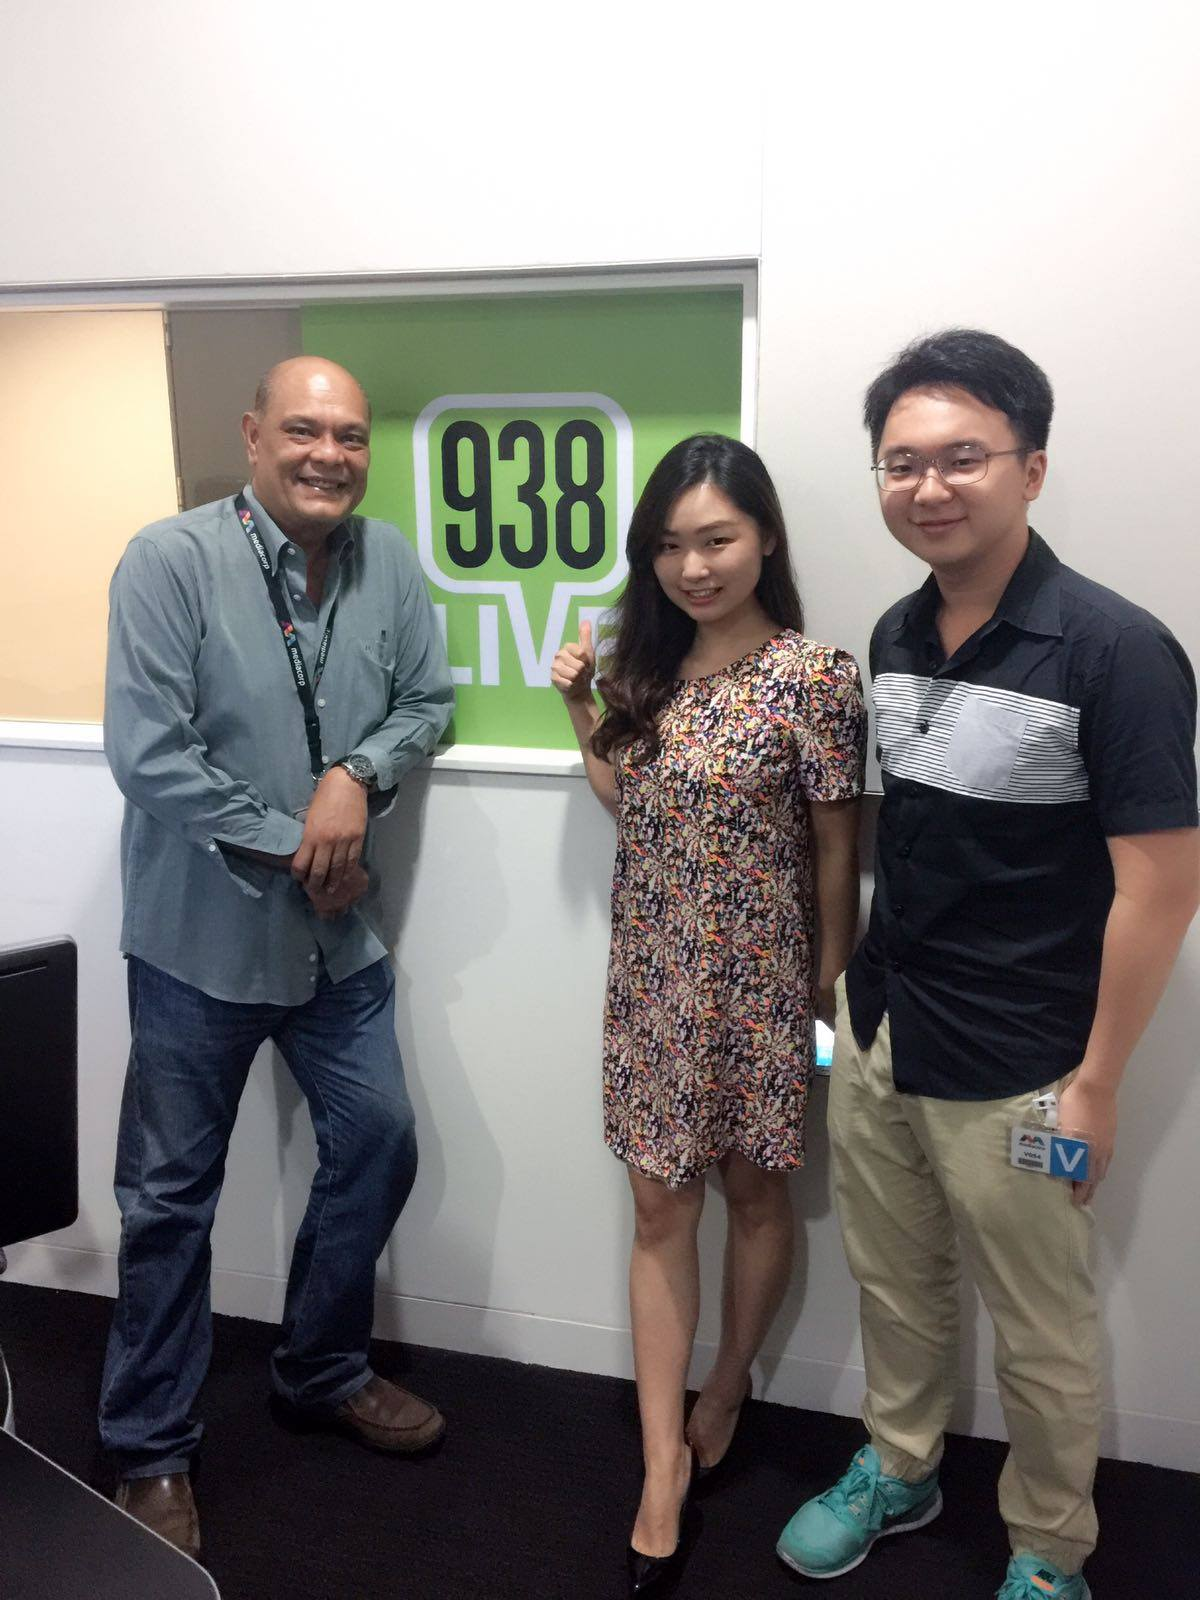 Miao is on 938 Live!